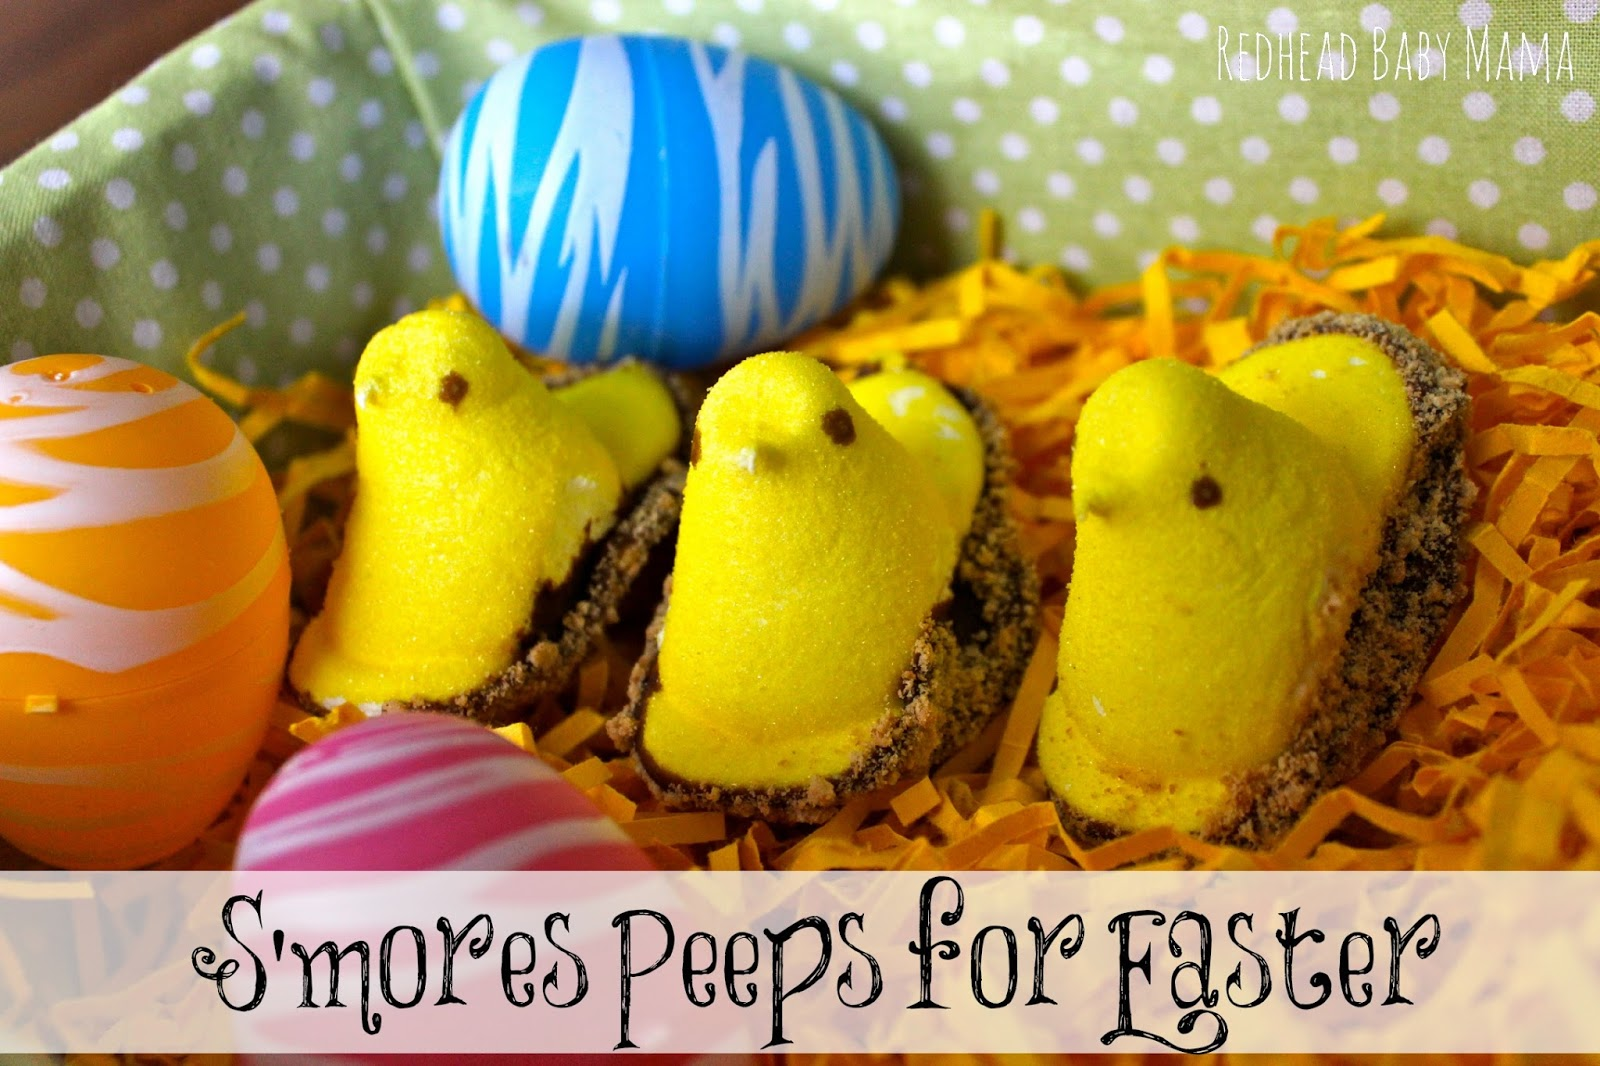 S'mores Peeps for Easter by Redhead Baby Mama